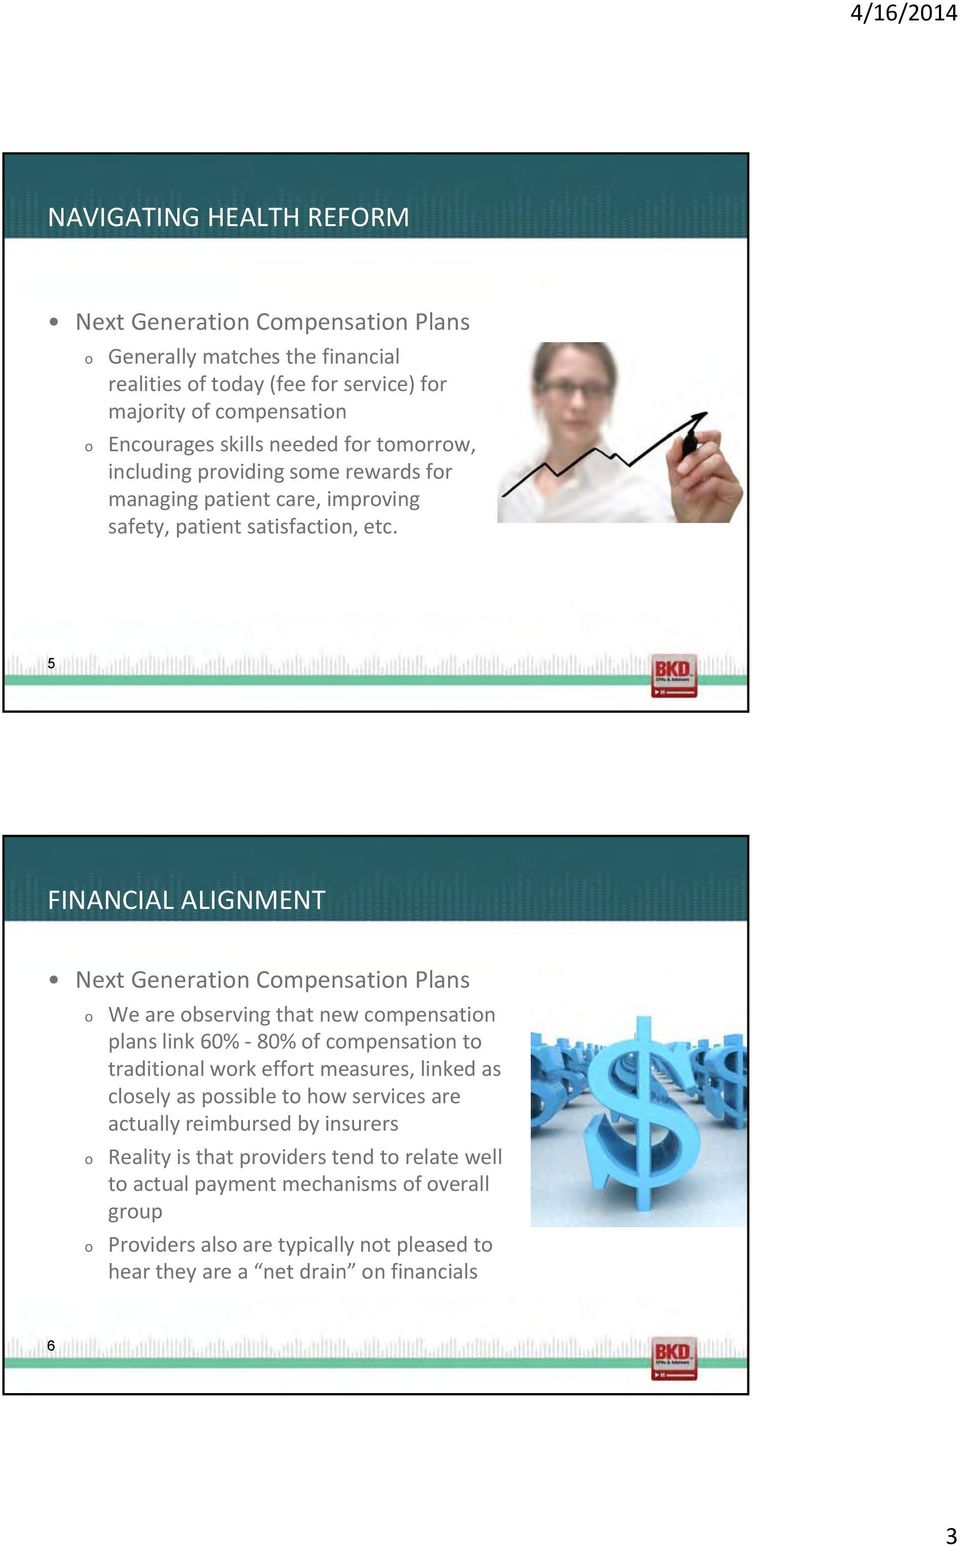 5 FINANCIAL ALIGNMENT Next Generatin Cmpensatin Plans We are bserving that new cmpensatin plans link 60% - 80% f cmpensatin t traditinal wrk effrt measures, linked as